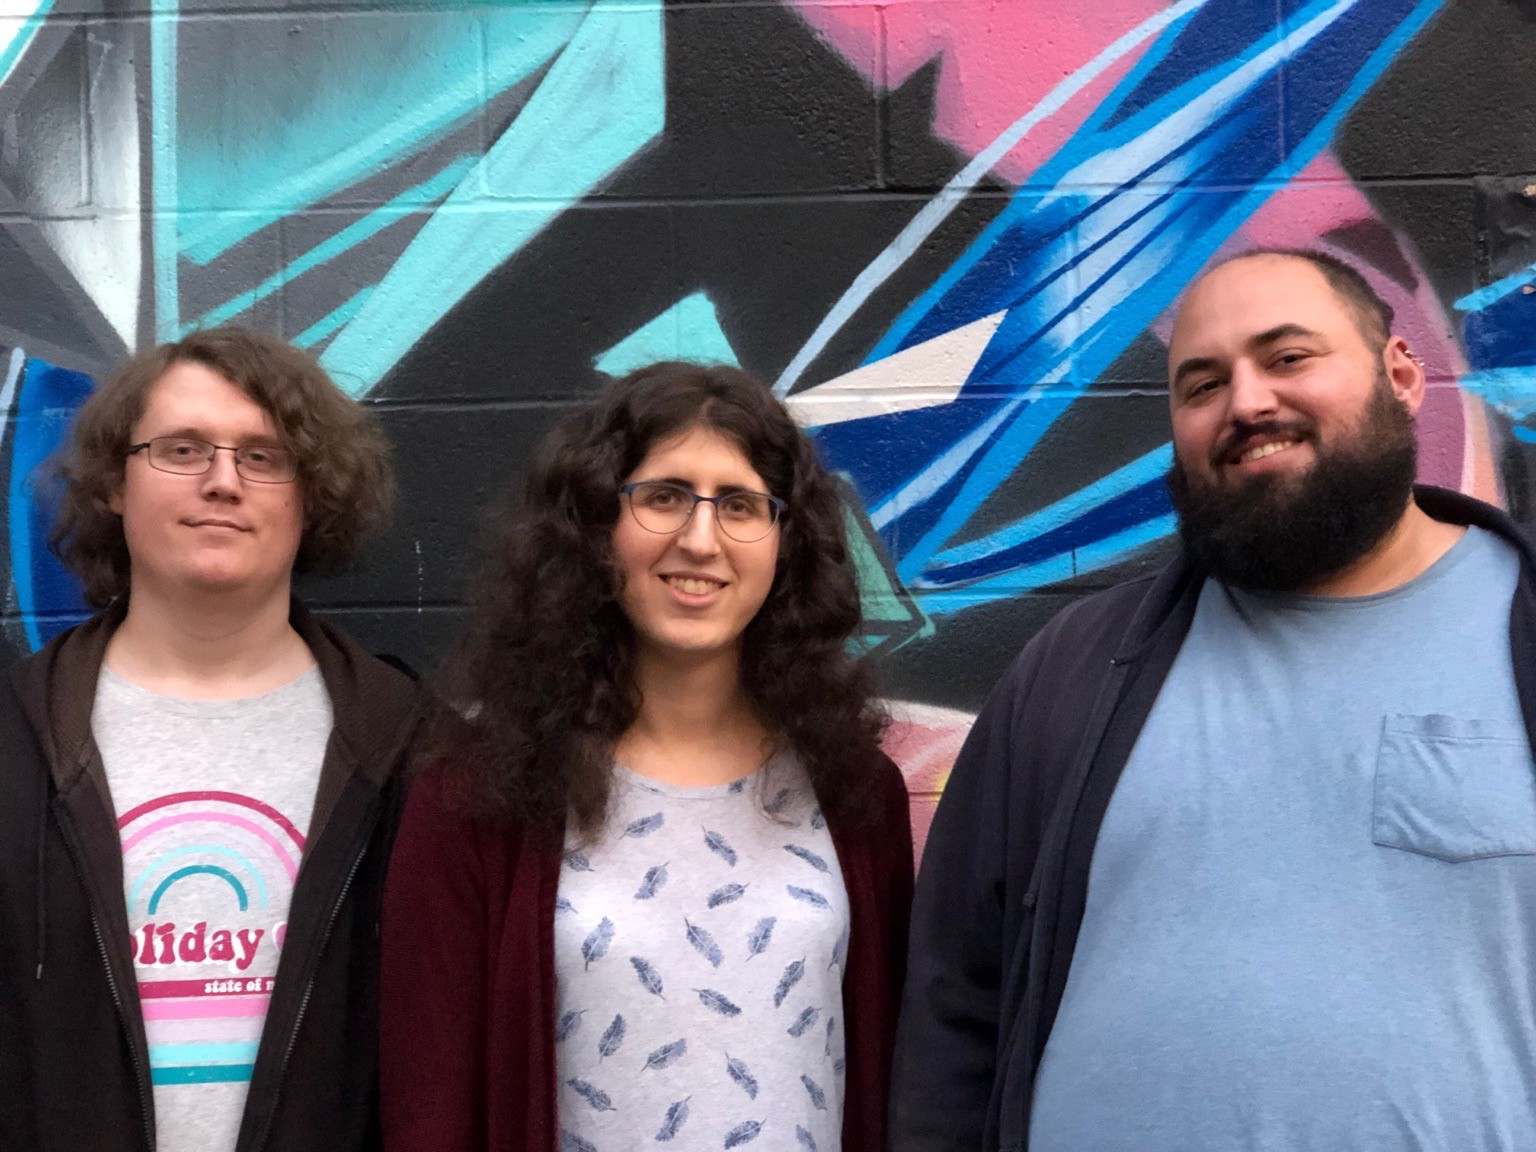 Three of the fired Google organizers standing against a colorful backdrop.